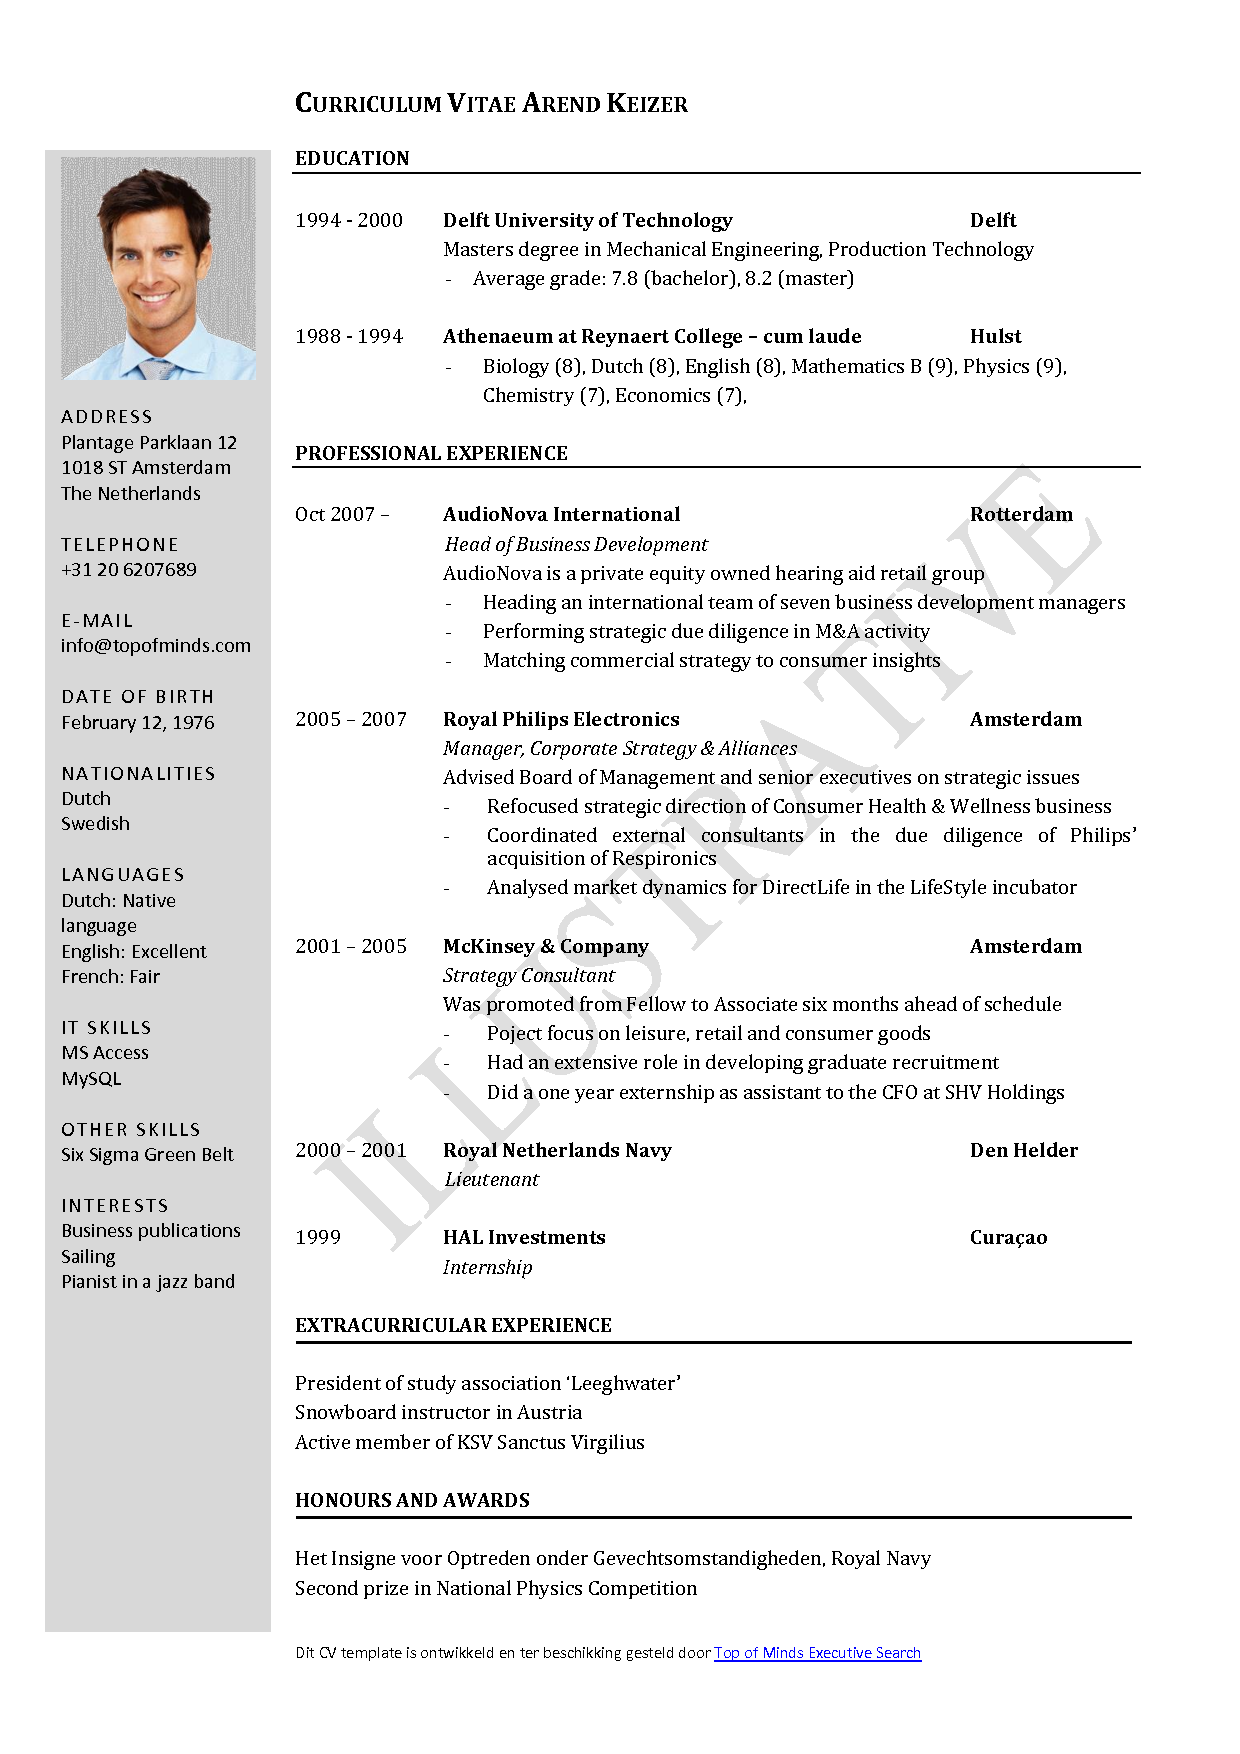 Free curriculum vitae template word download cv template for Free resume download word